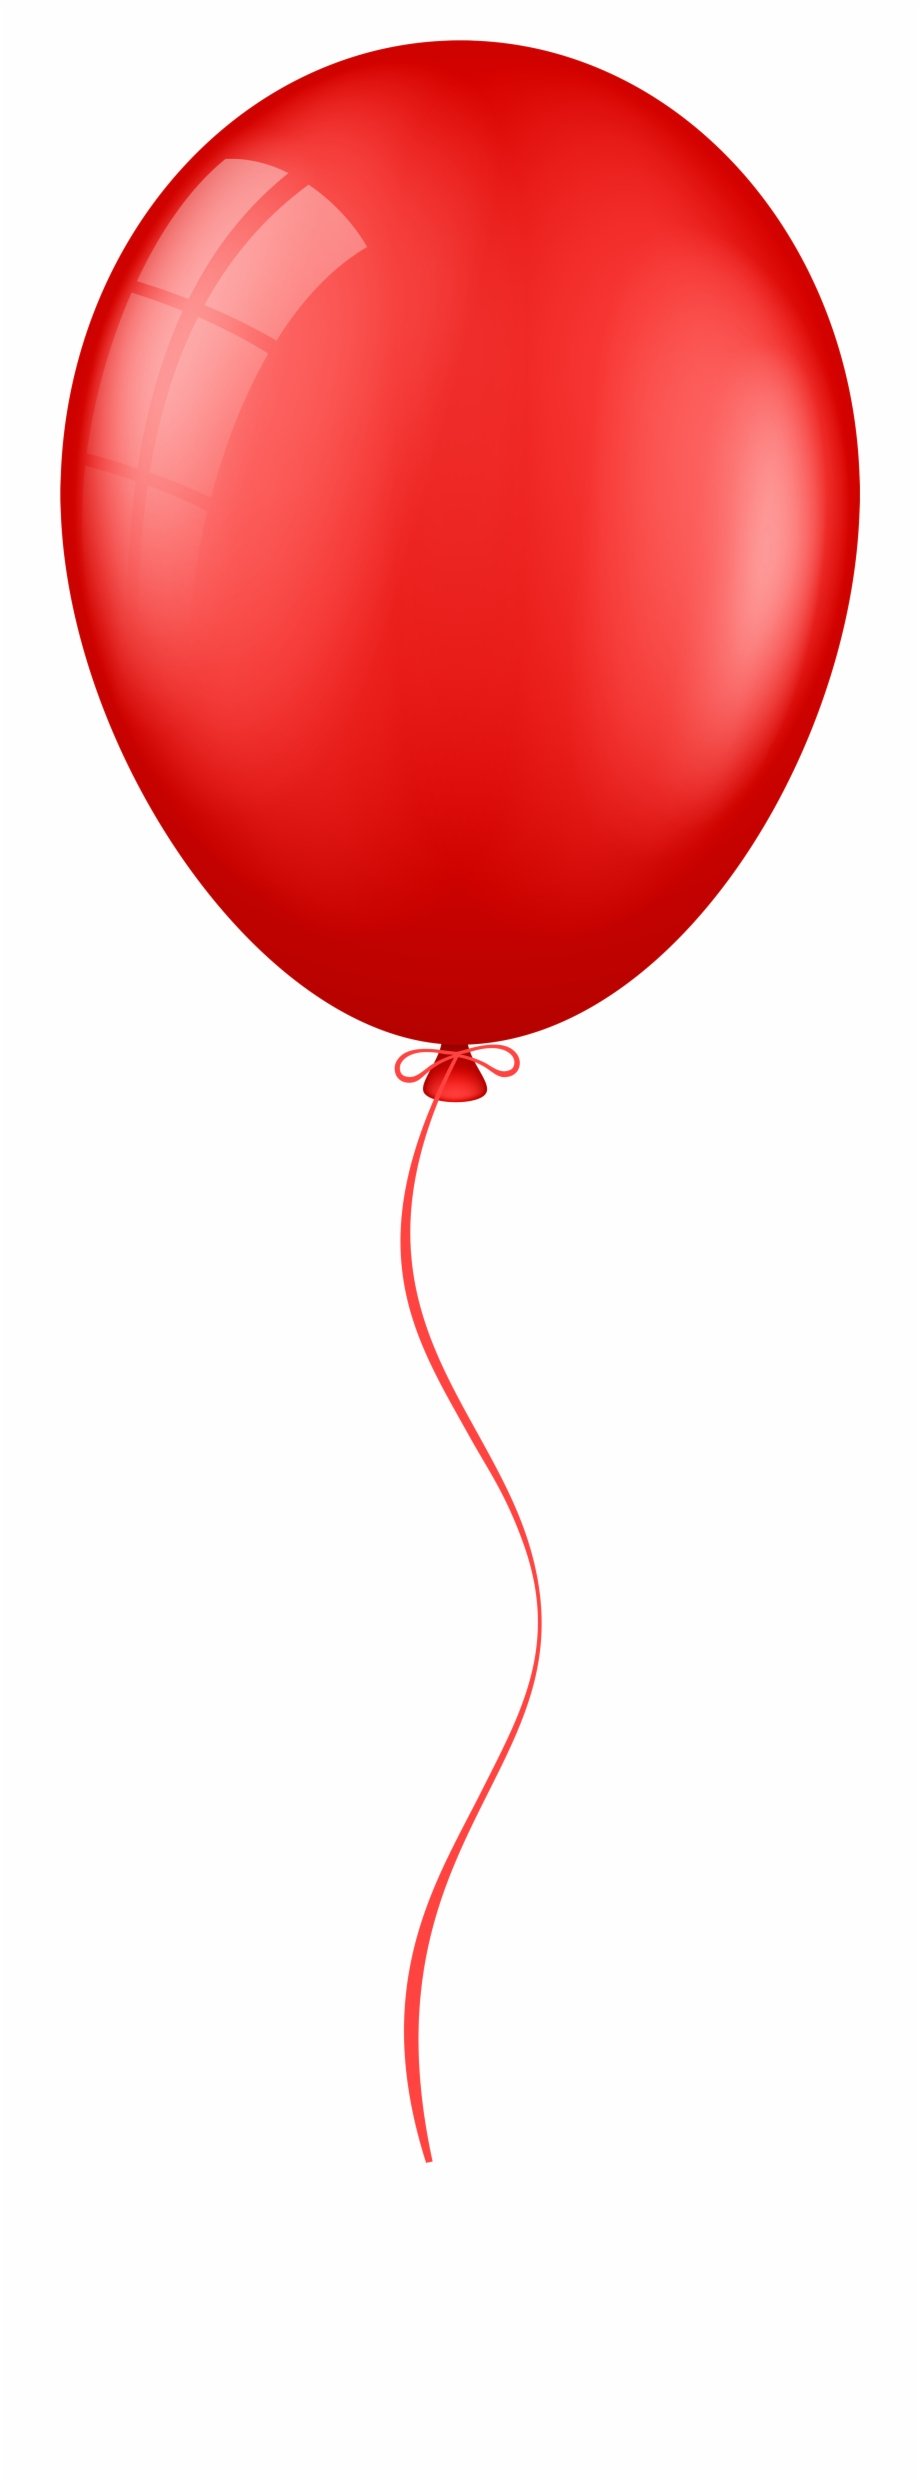 Free Balloon Clipart Transparent Background, Download Free.